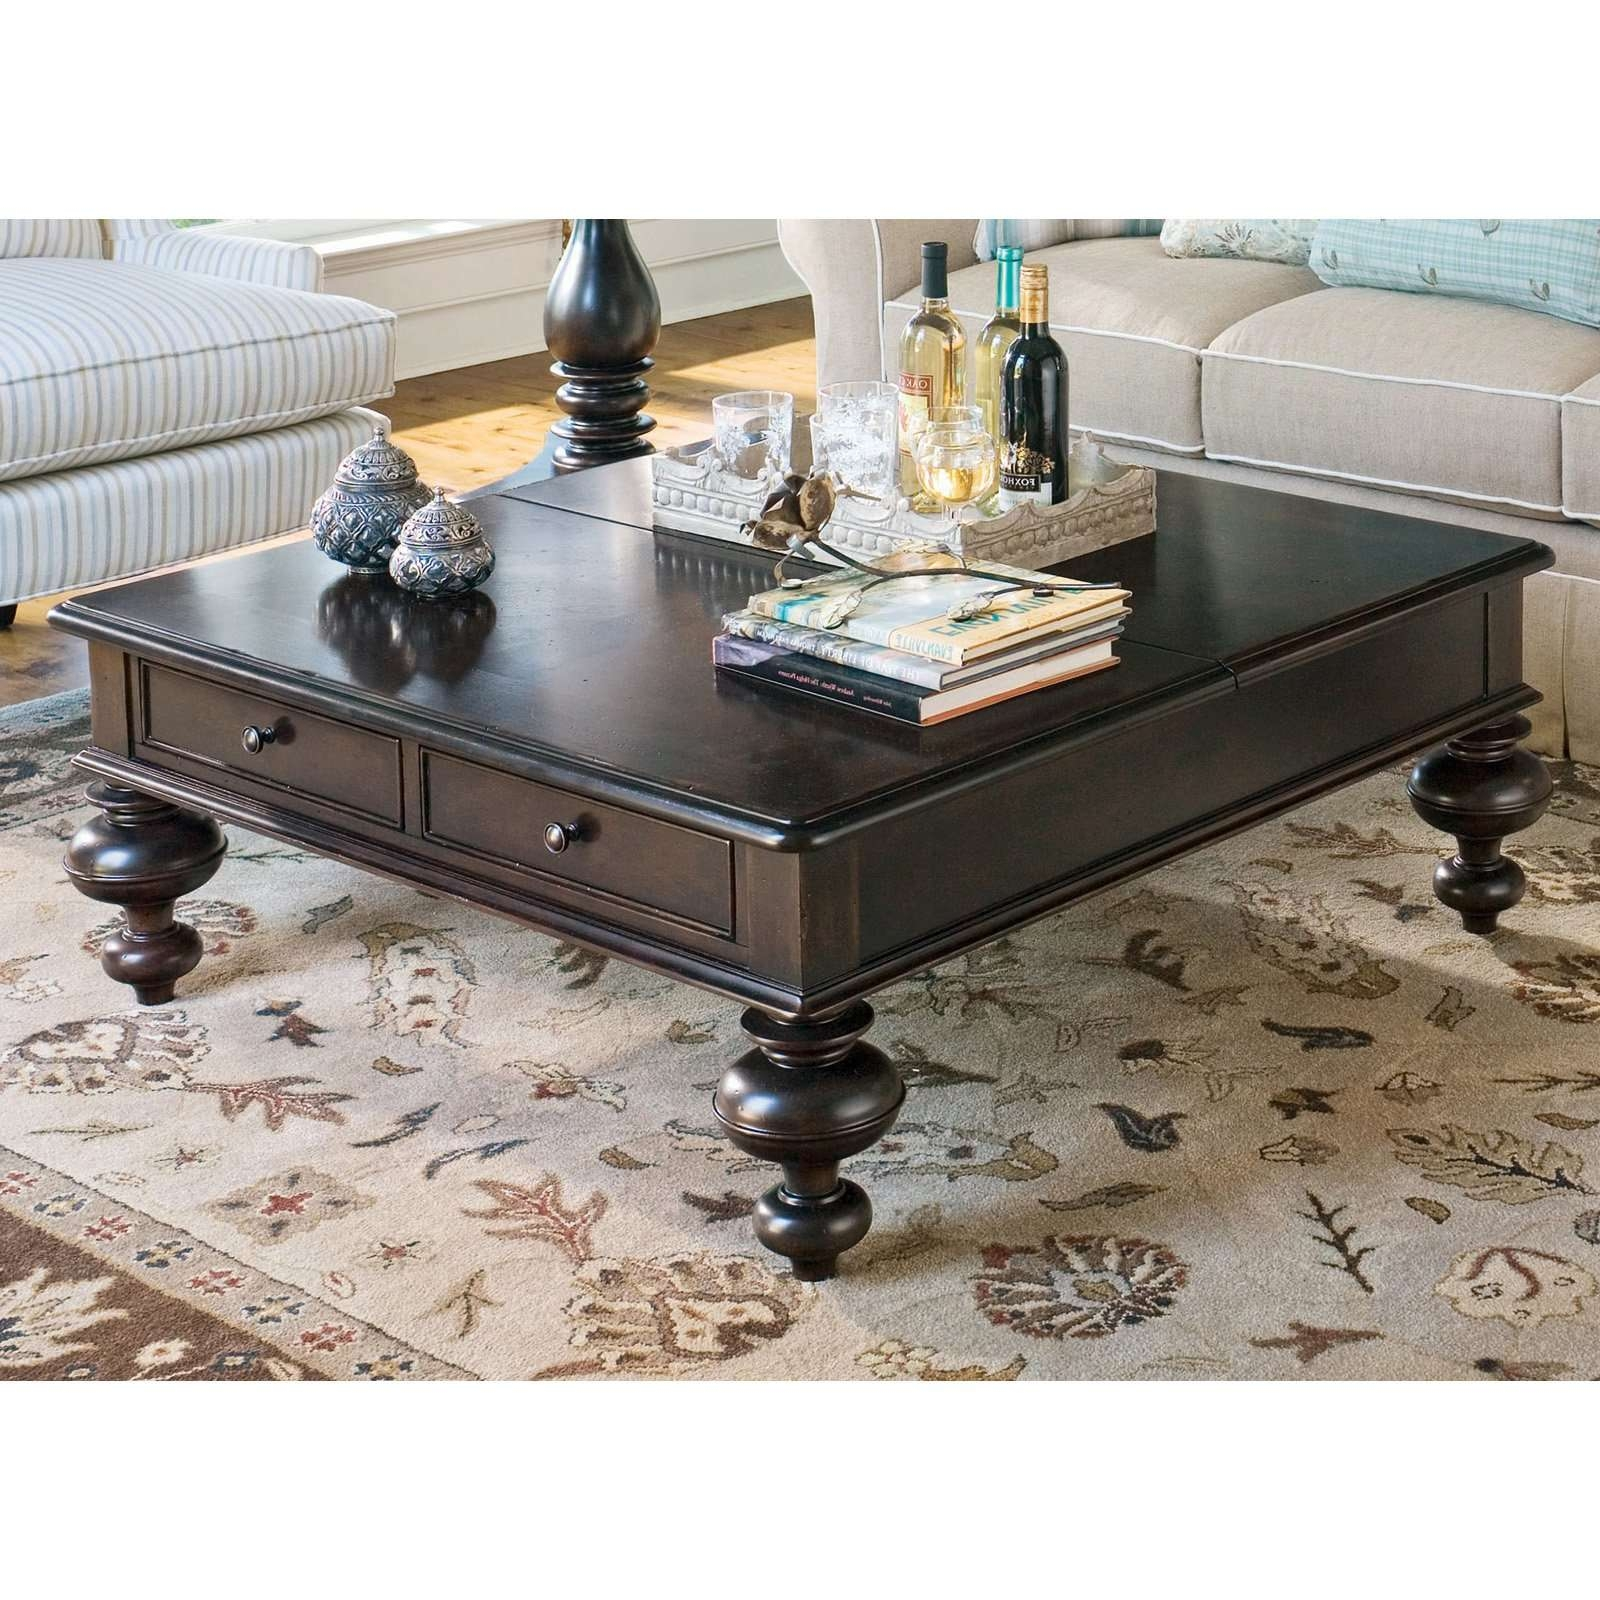 Most Recent Lift Top Coffee Tables With Storage Regarding Paula Deen Home Put Your Feet Up Square Linen Wood Lift Top Coffee (View 7 of 20)